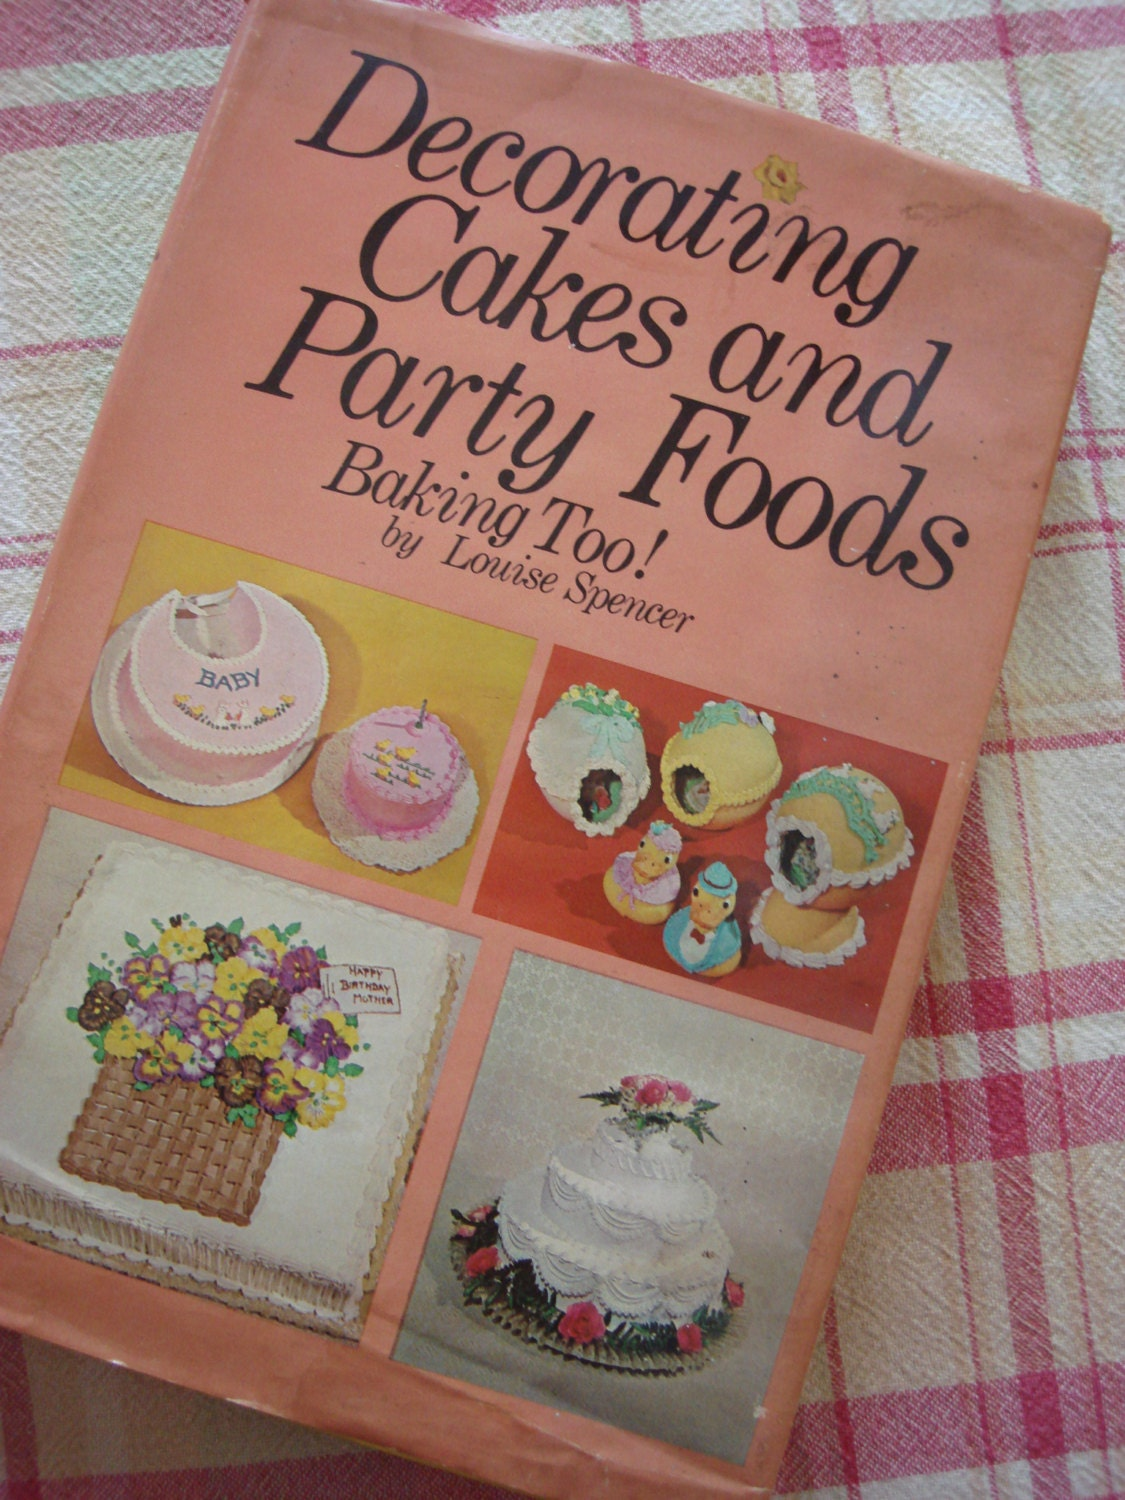 Cake Decorating Cookbook : Vintage Cookbook 1969 Decorating Cakes and Party